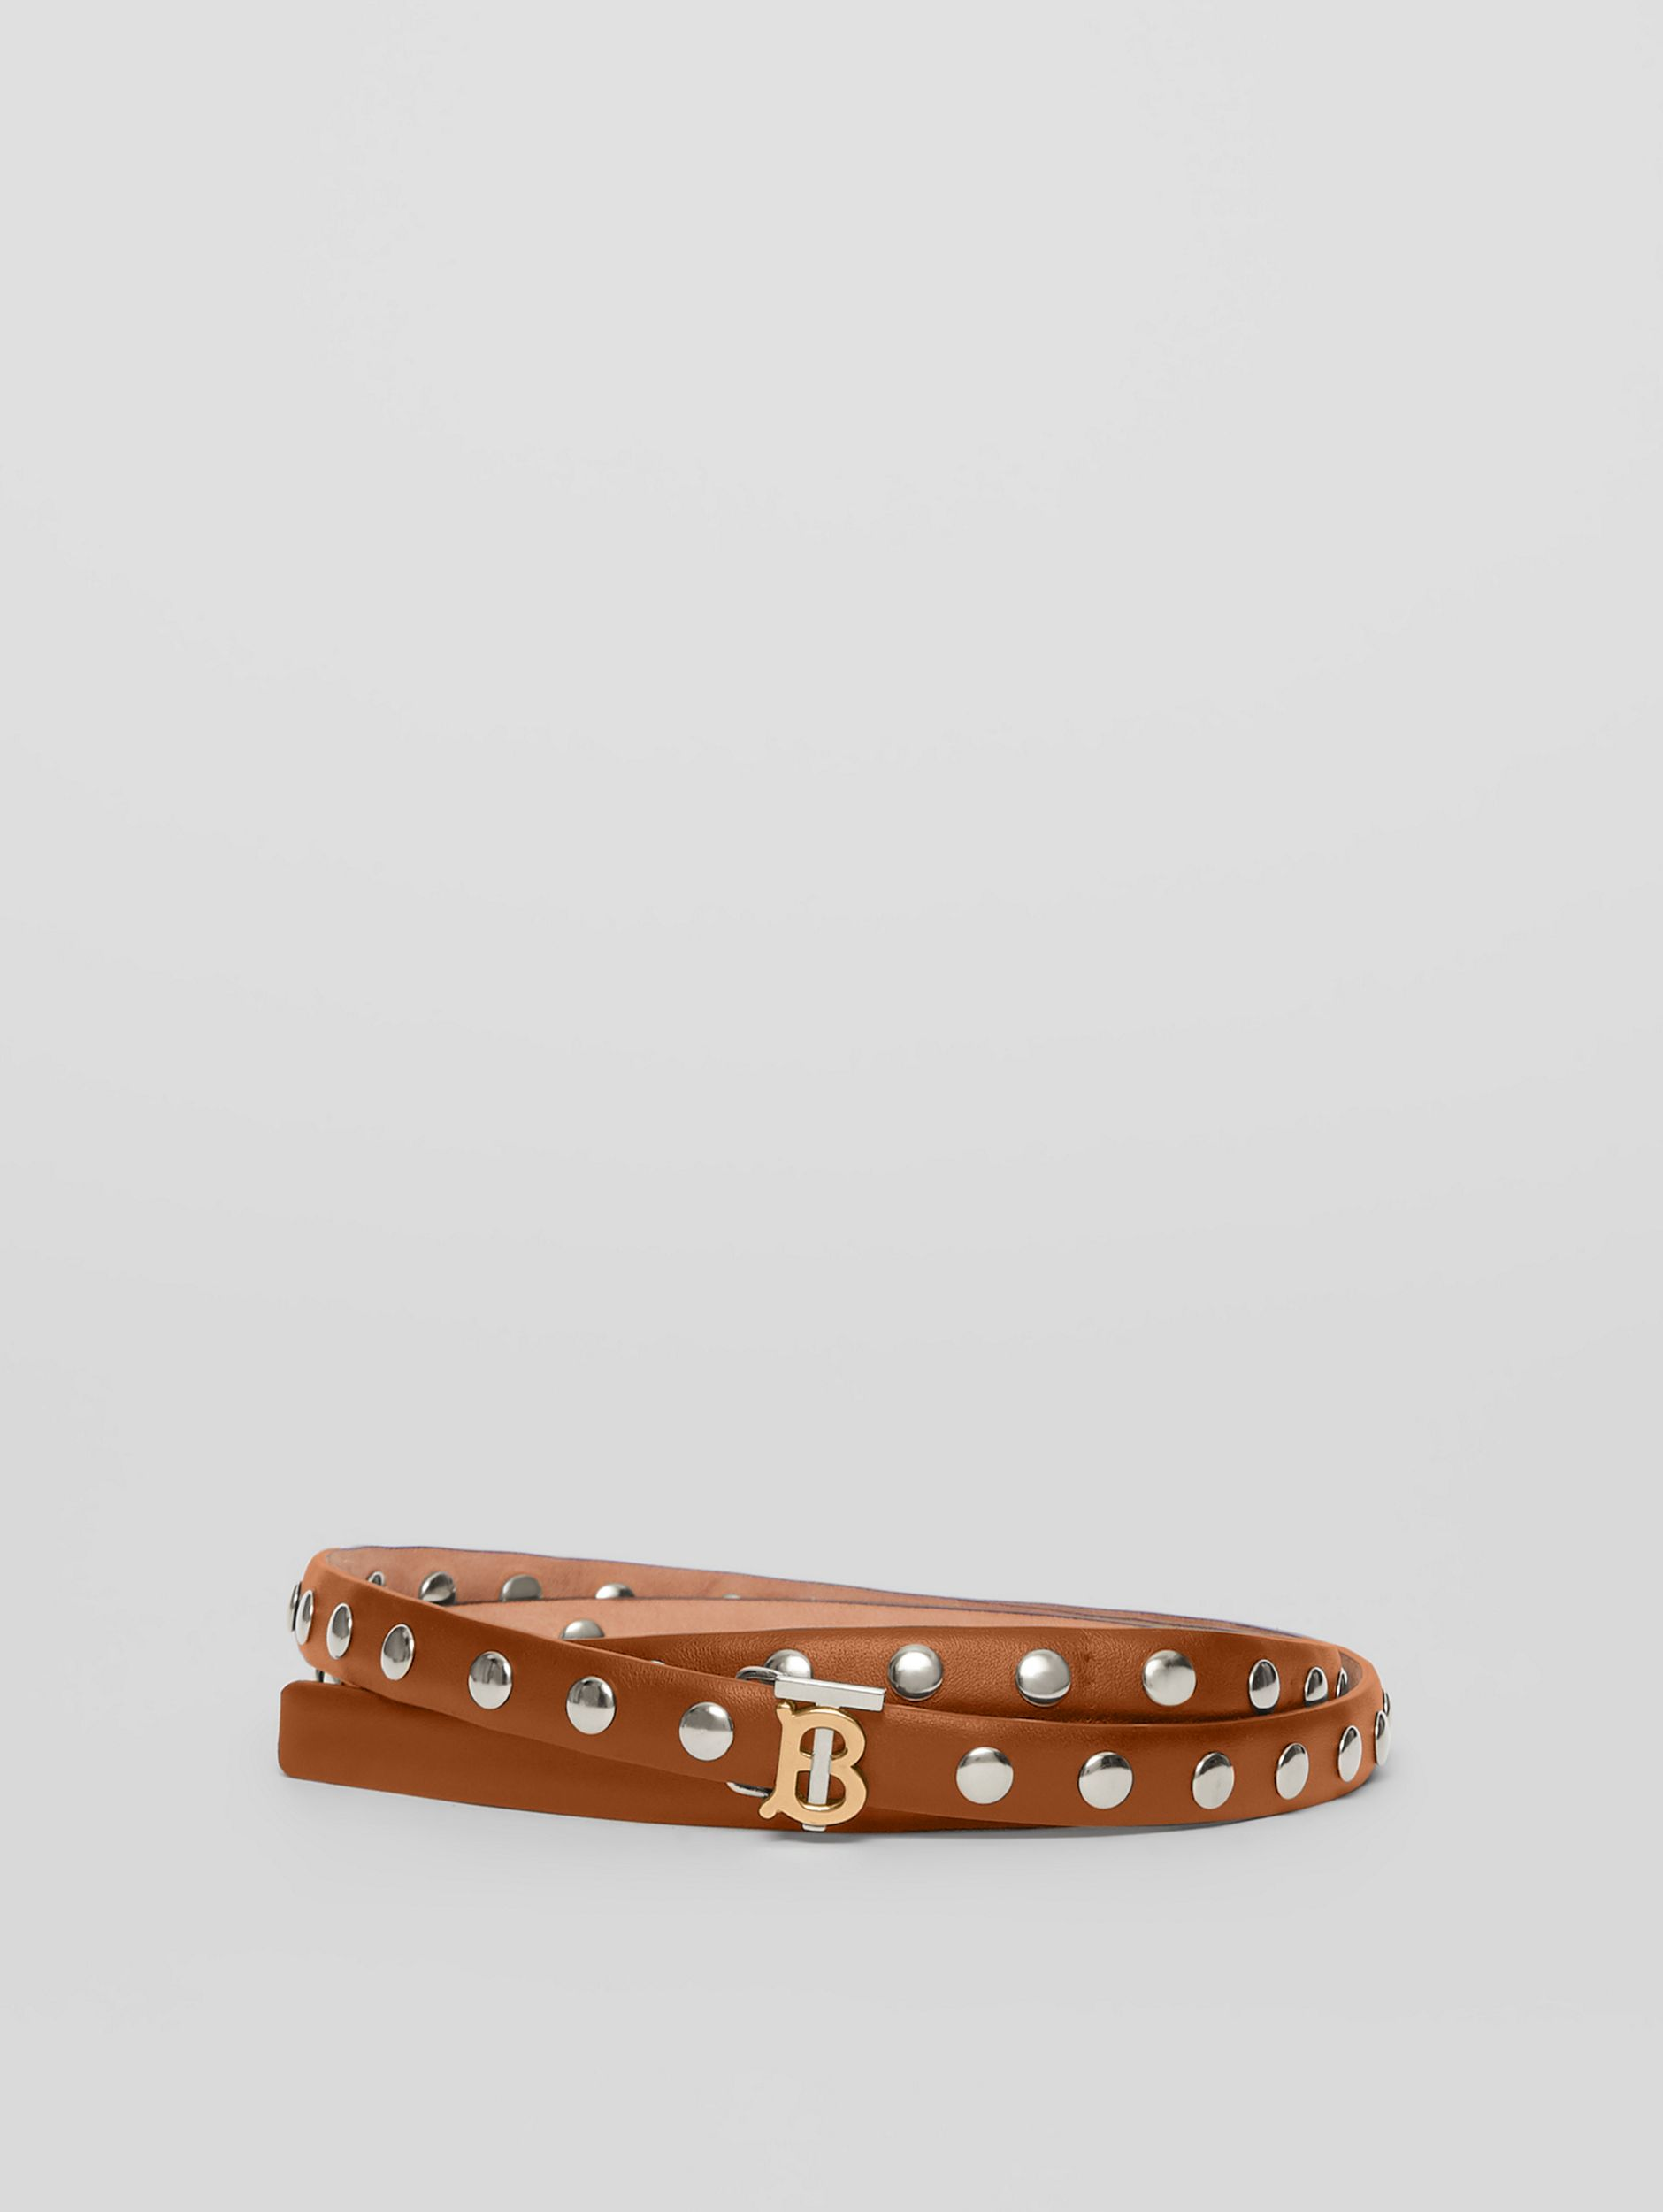 Monogram Motif Studded Leather Belt in Malt Brown/palladio - Women | Burberry - 1